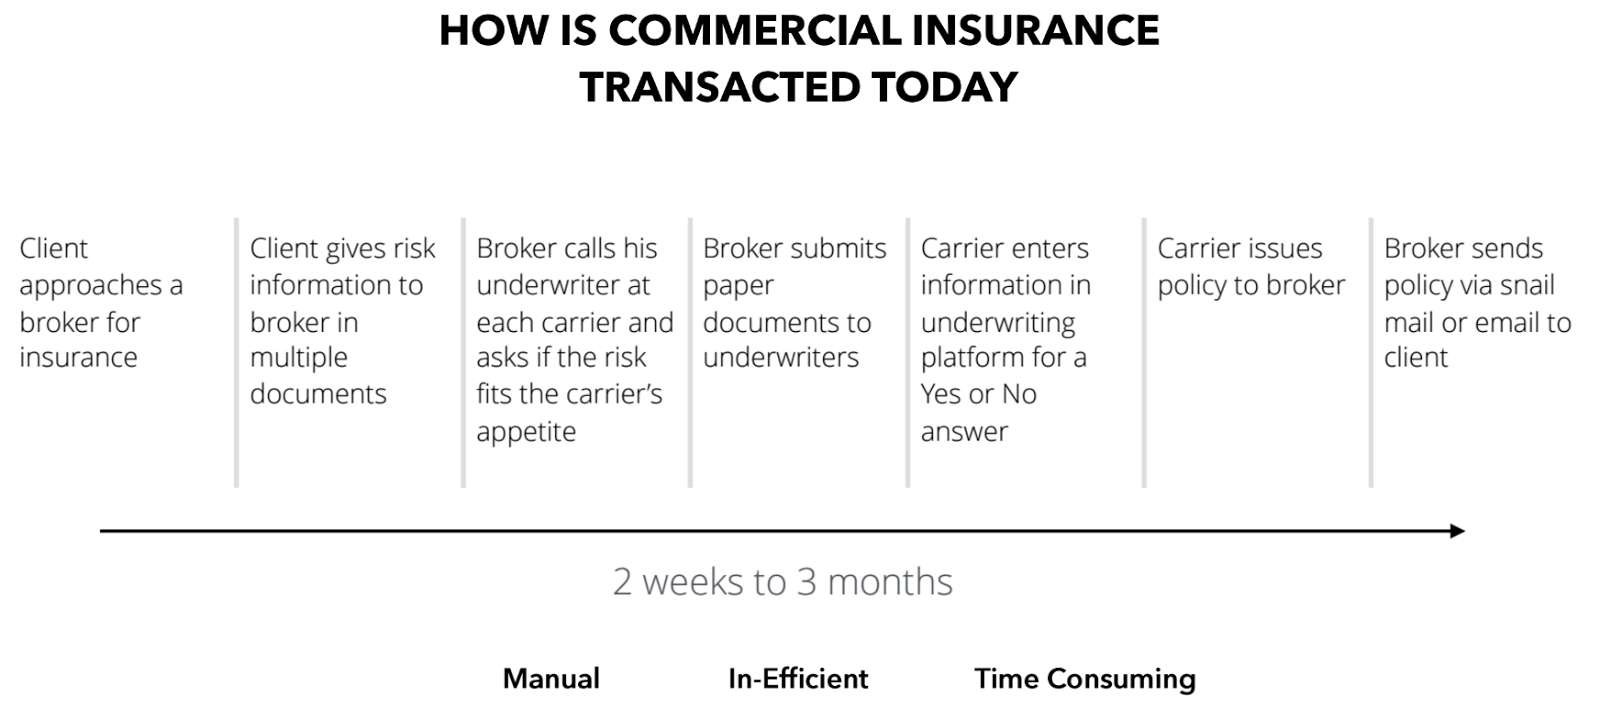 How One Company Is Empowering Brokers and Insurers in Face of InsurTech Rivalry